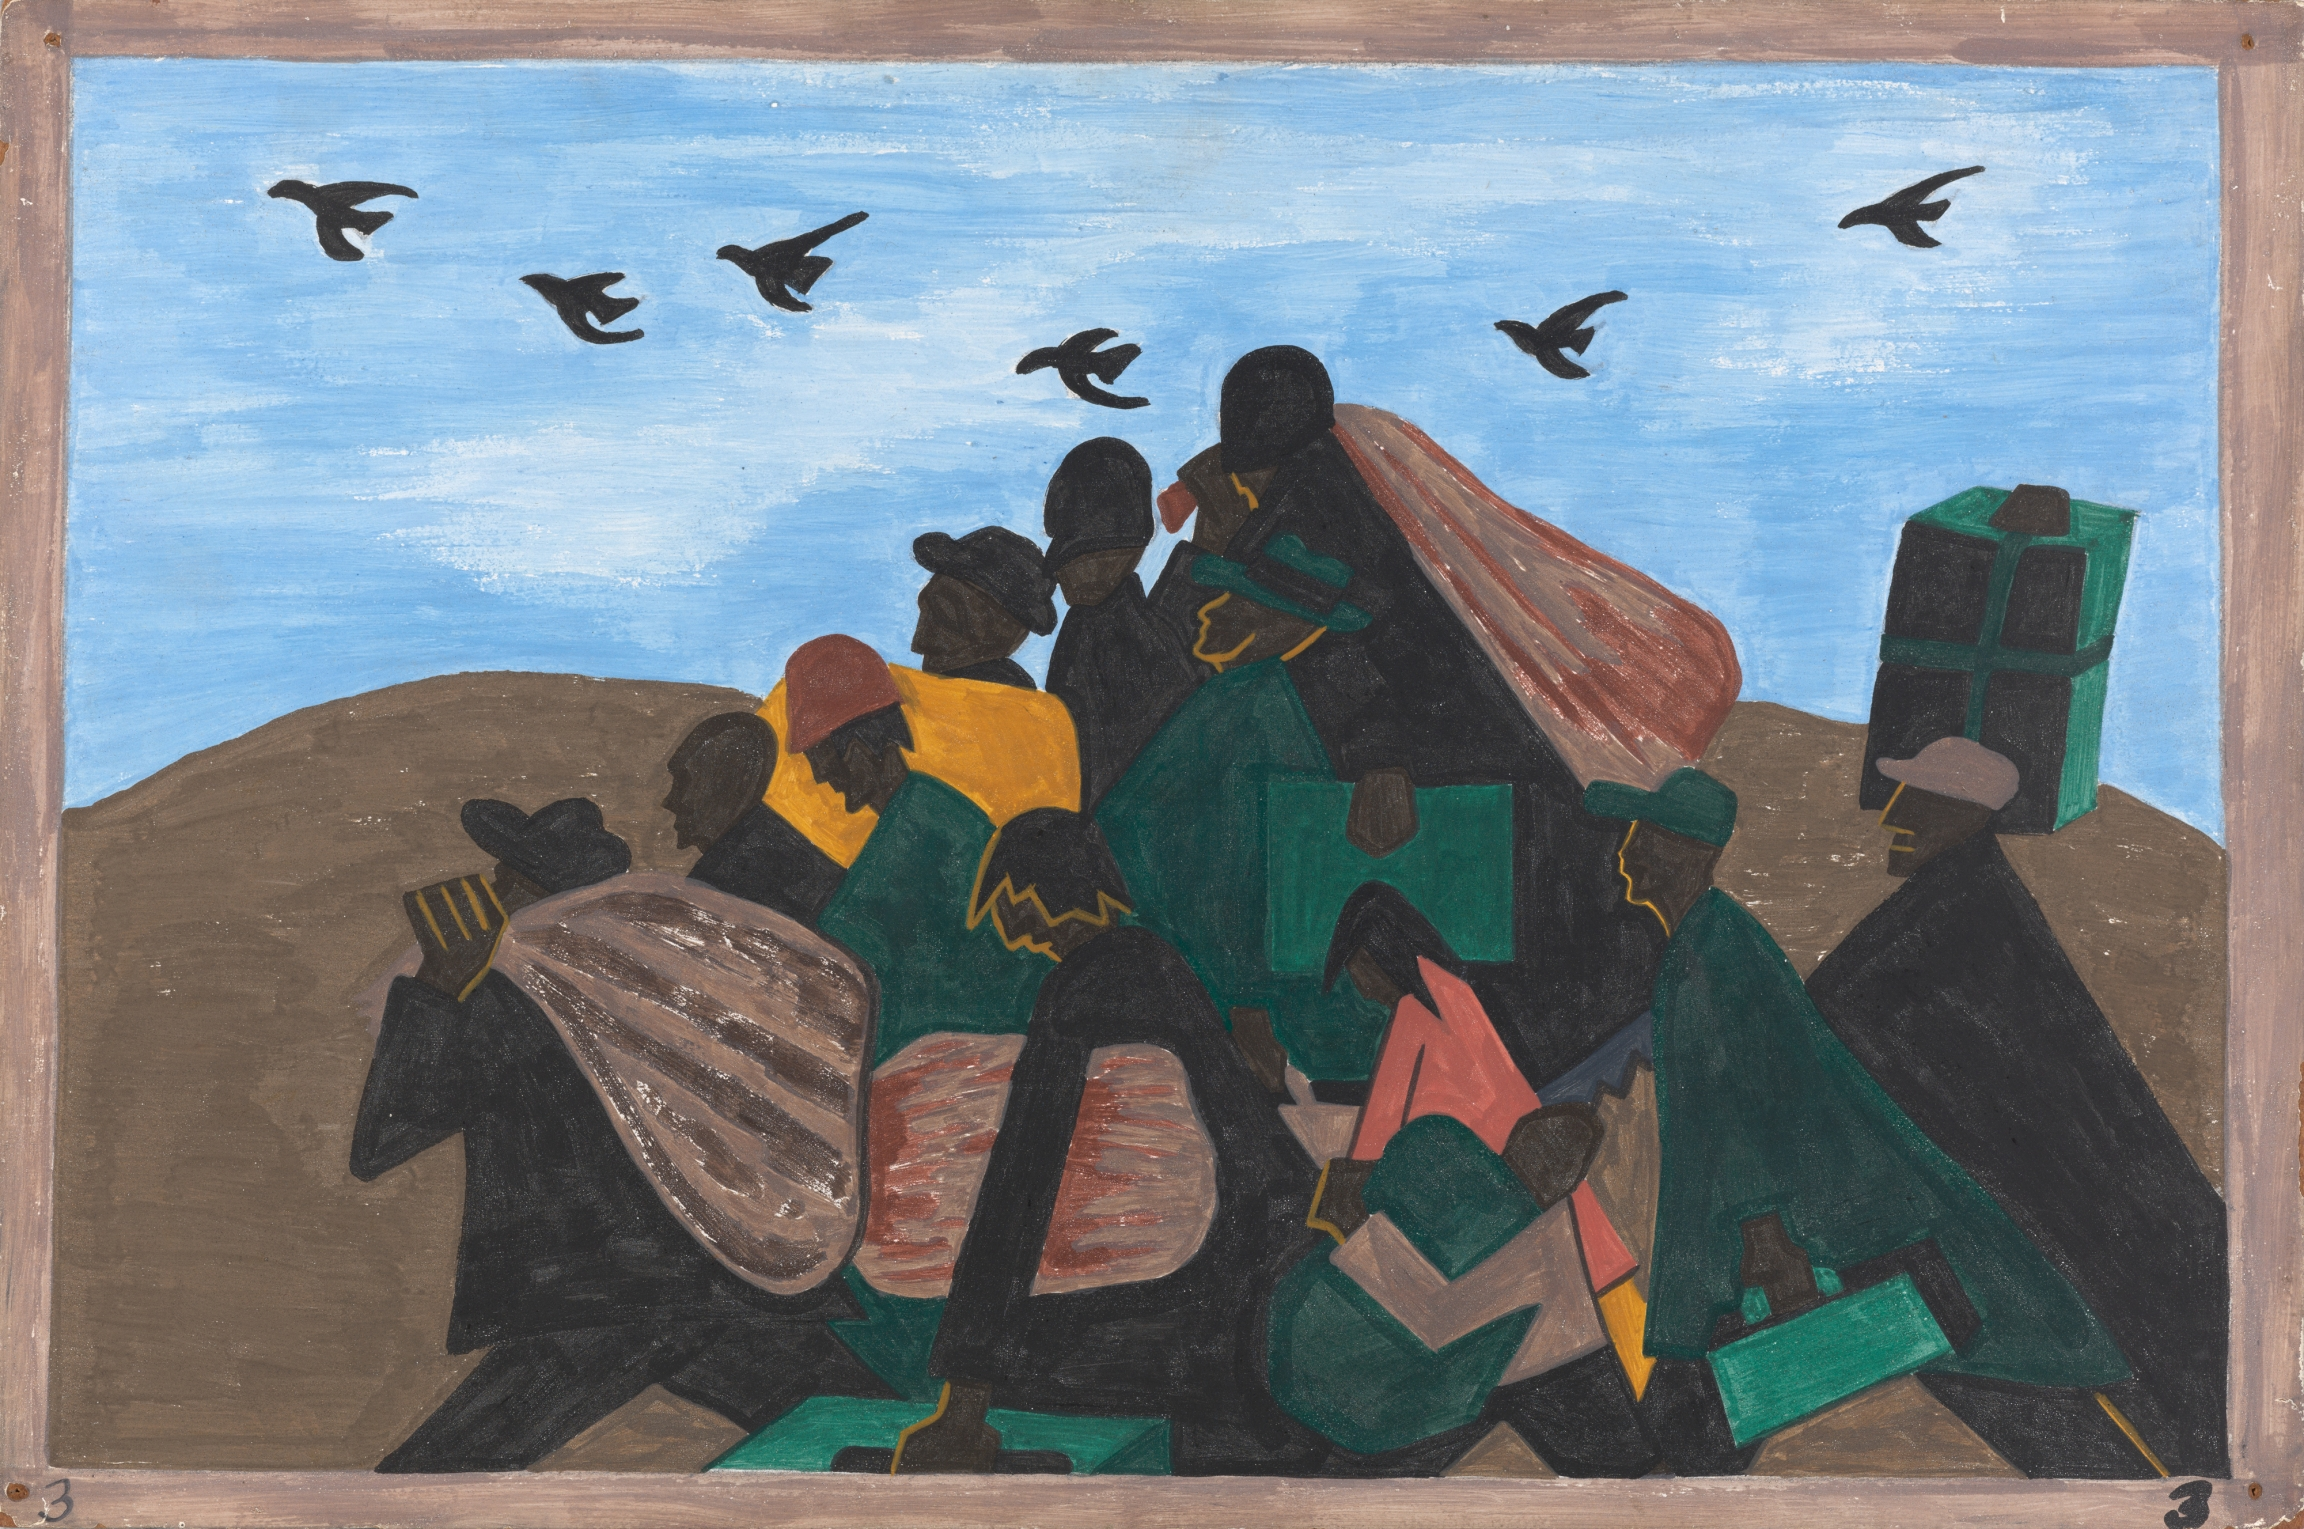 """Jacob Lawrence, """"The Migration Series, Panel no. 3: From every southern town migrants left by the hundreds to travel north.,"""" 1940–41. Casein tempera on hardboard, 12 x 18 in."""